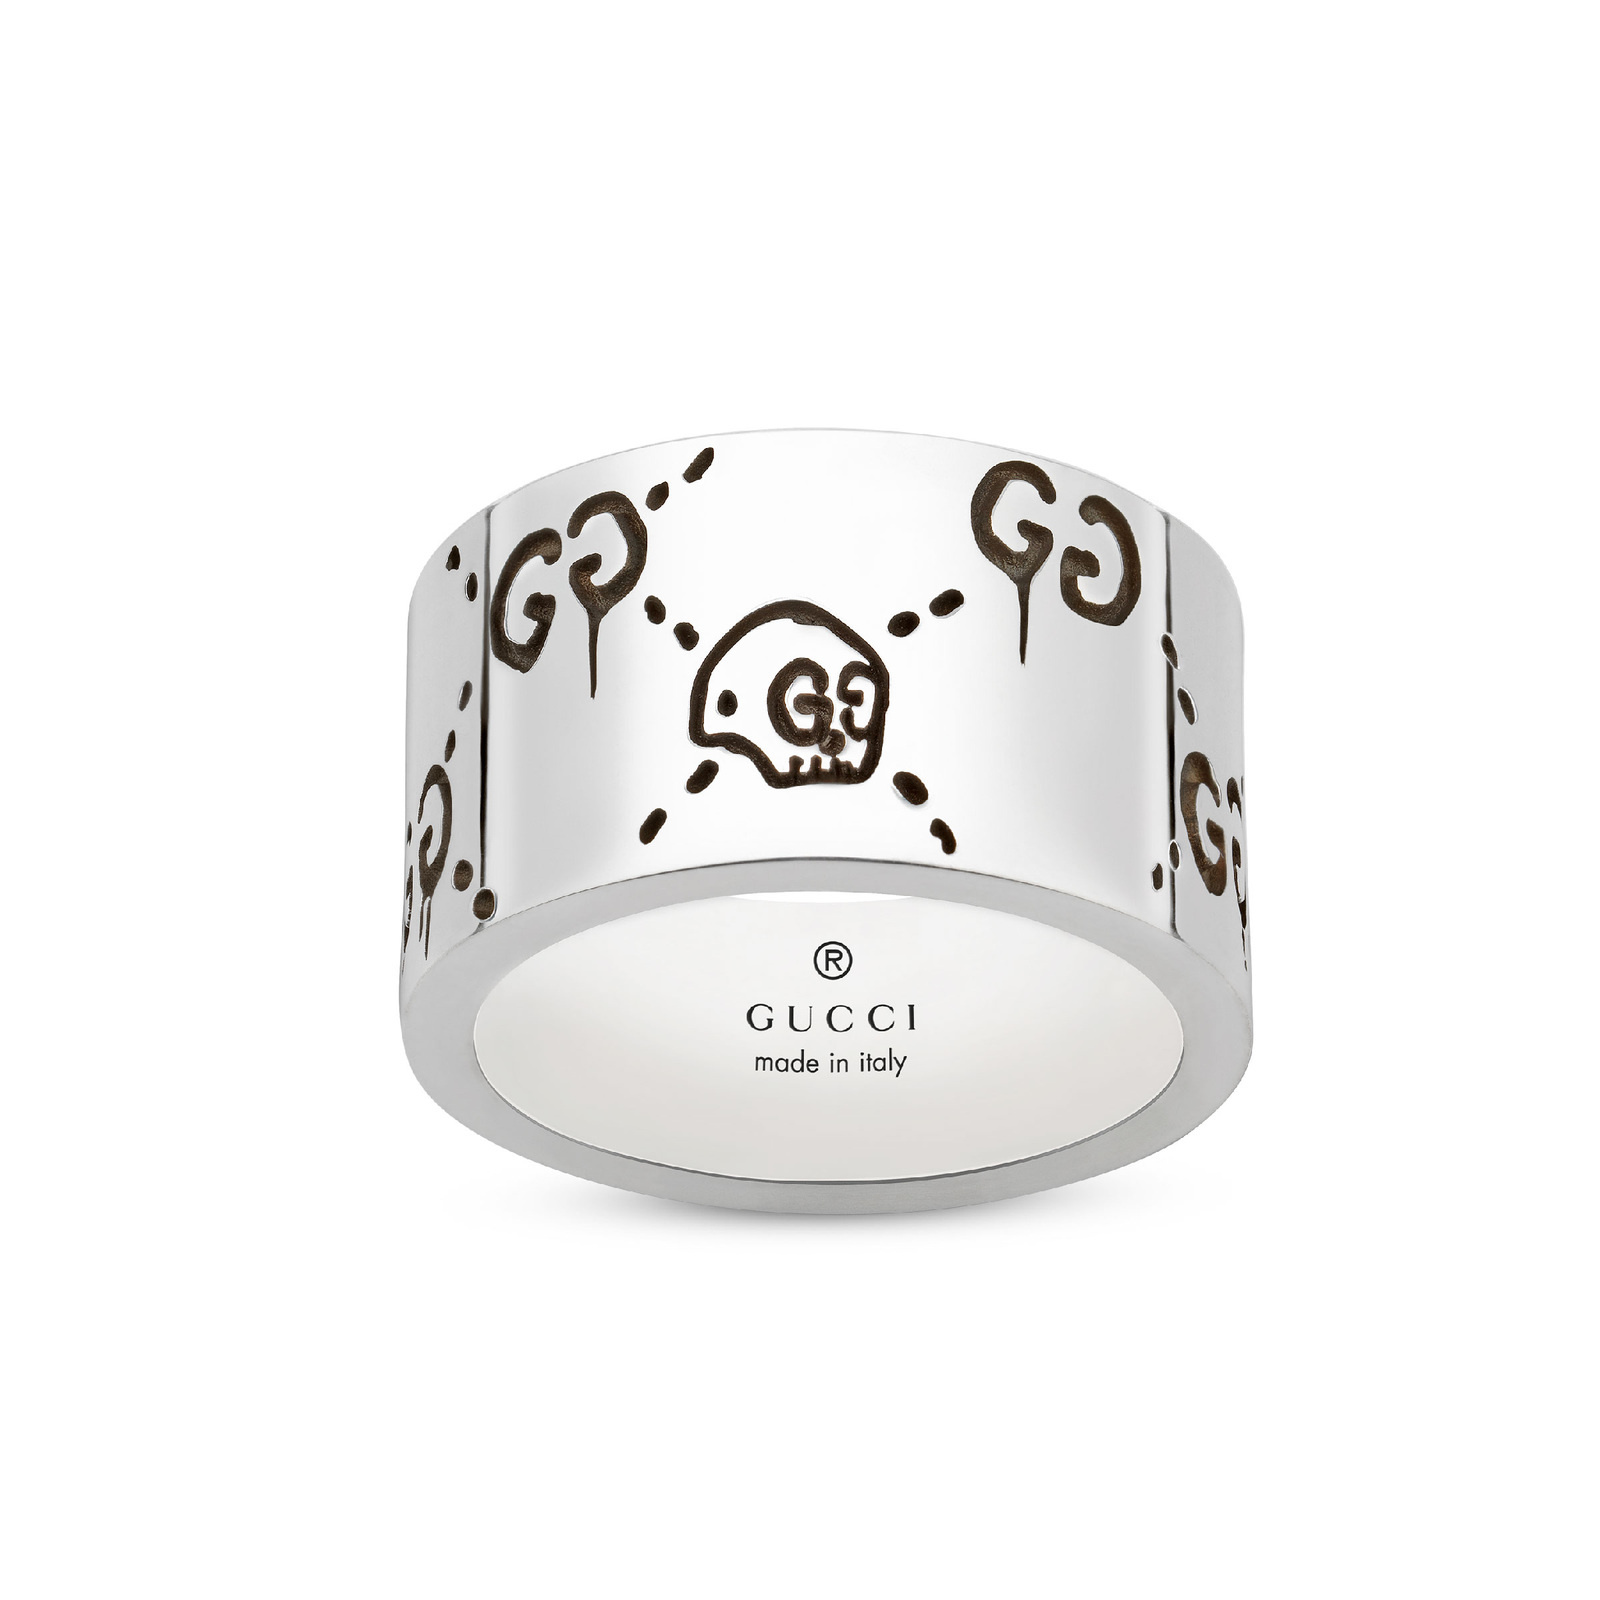 GucciGhost 12mm Ring in Silver - Ring Size M